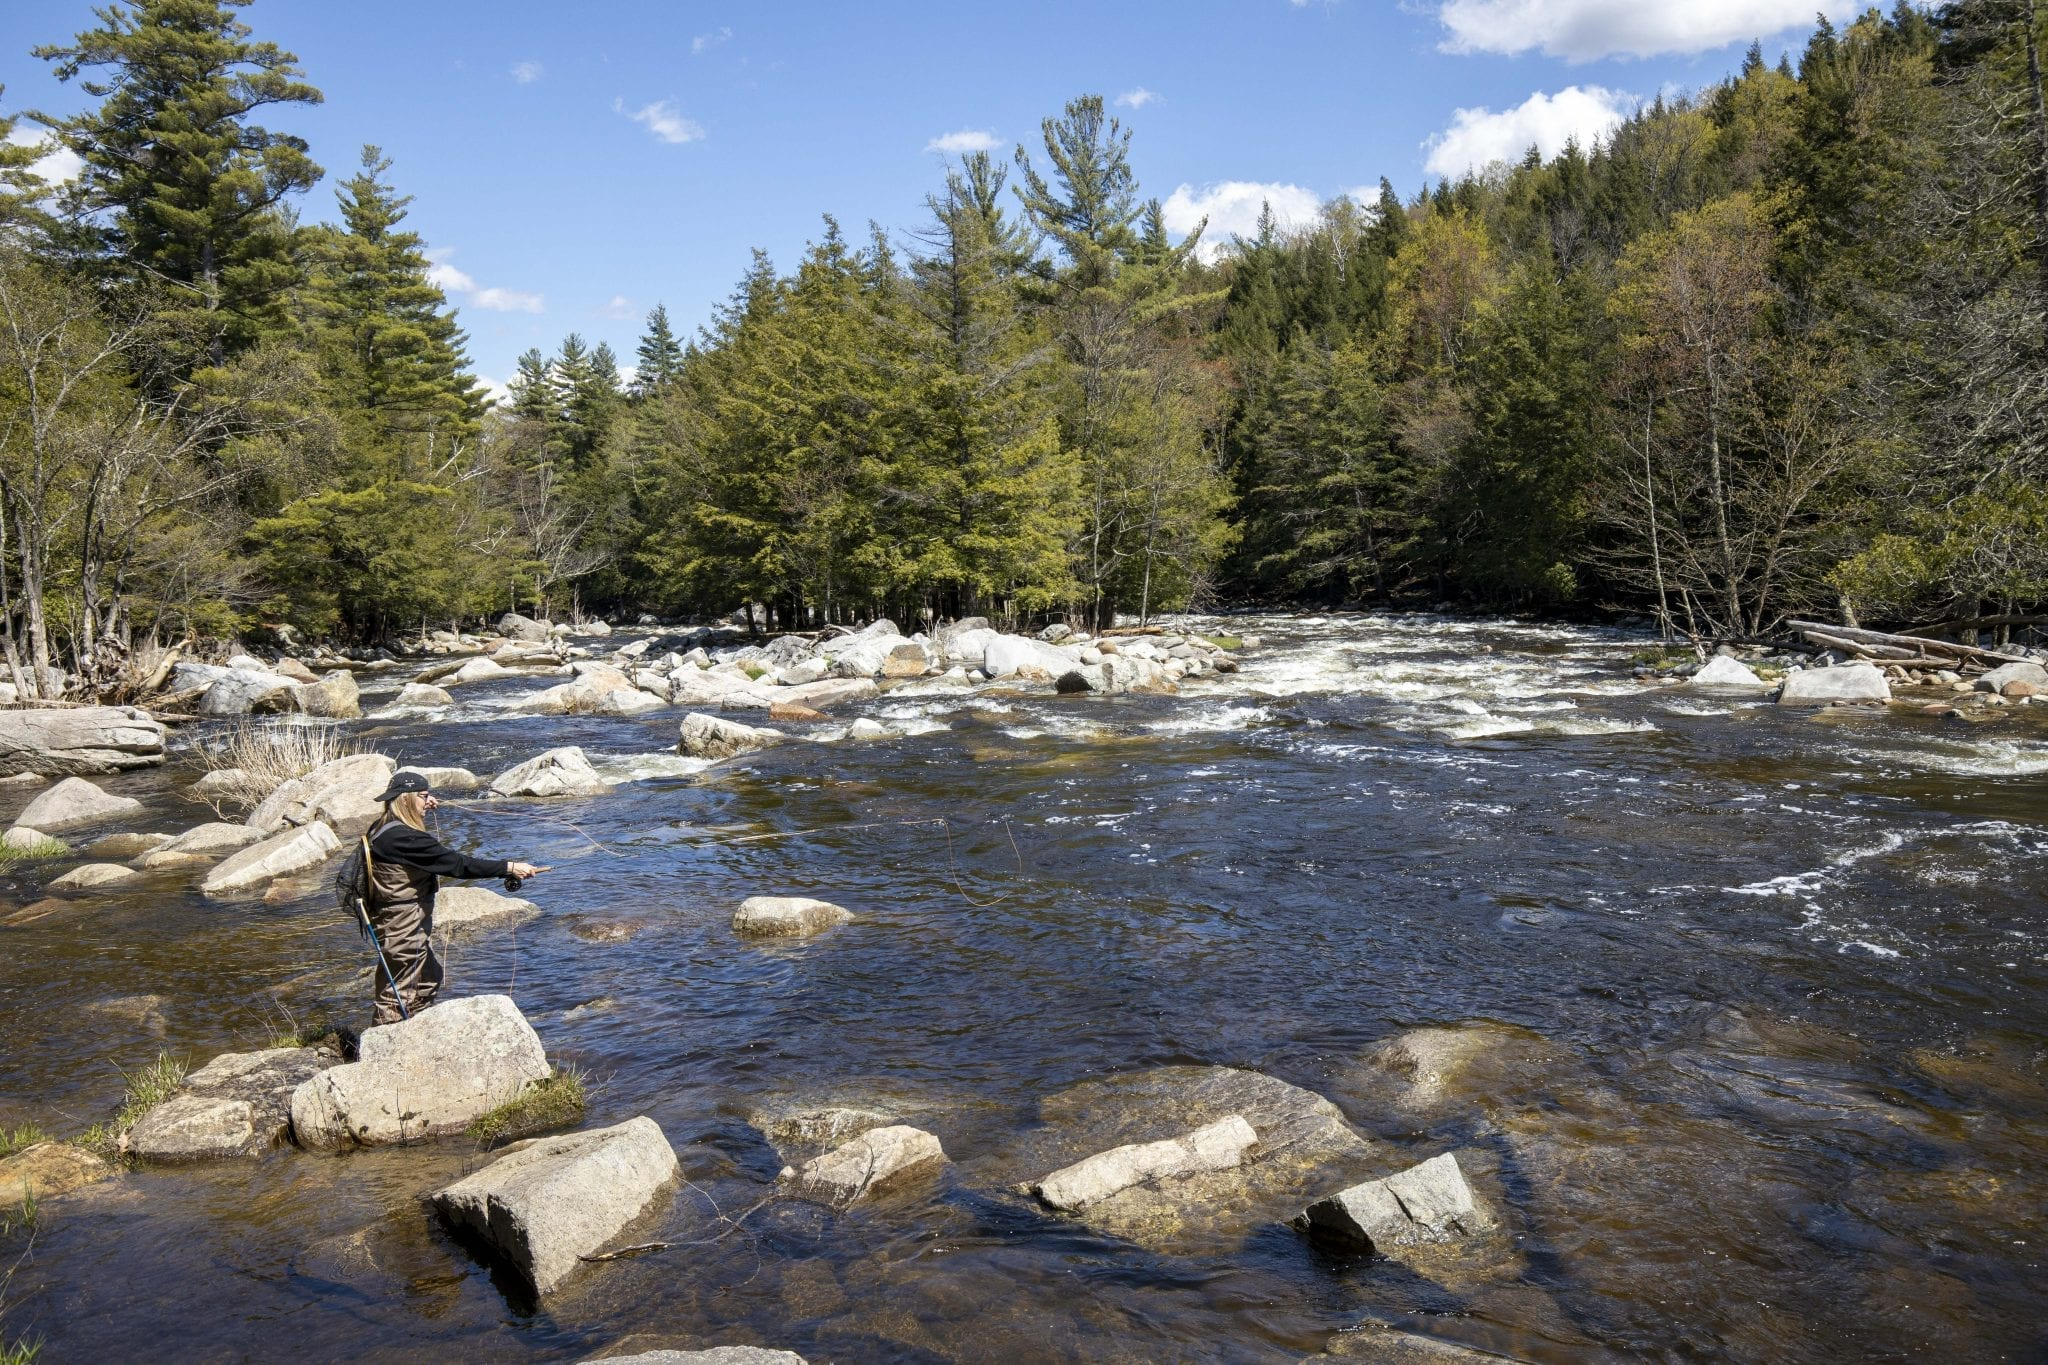 A woman fishes the West Branch of the Ausable River